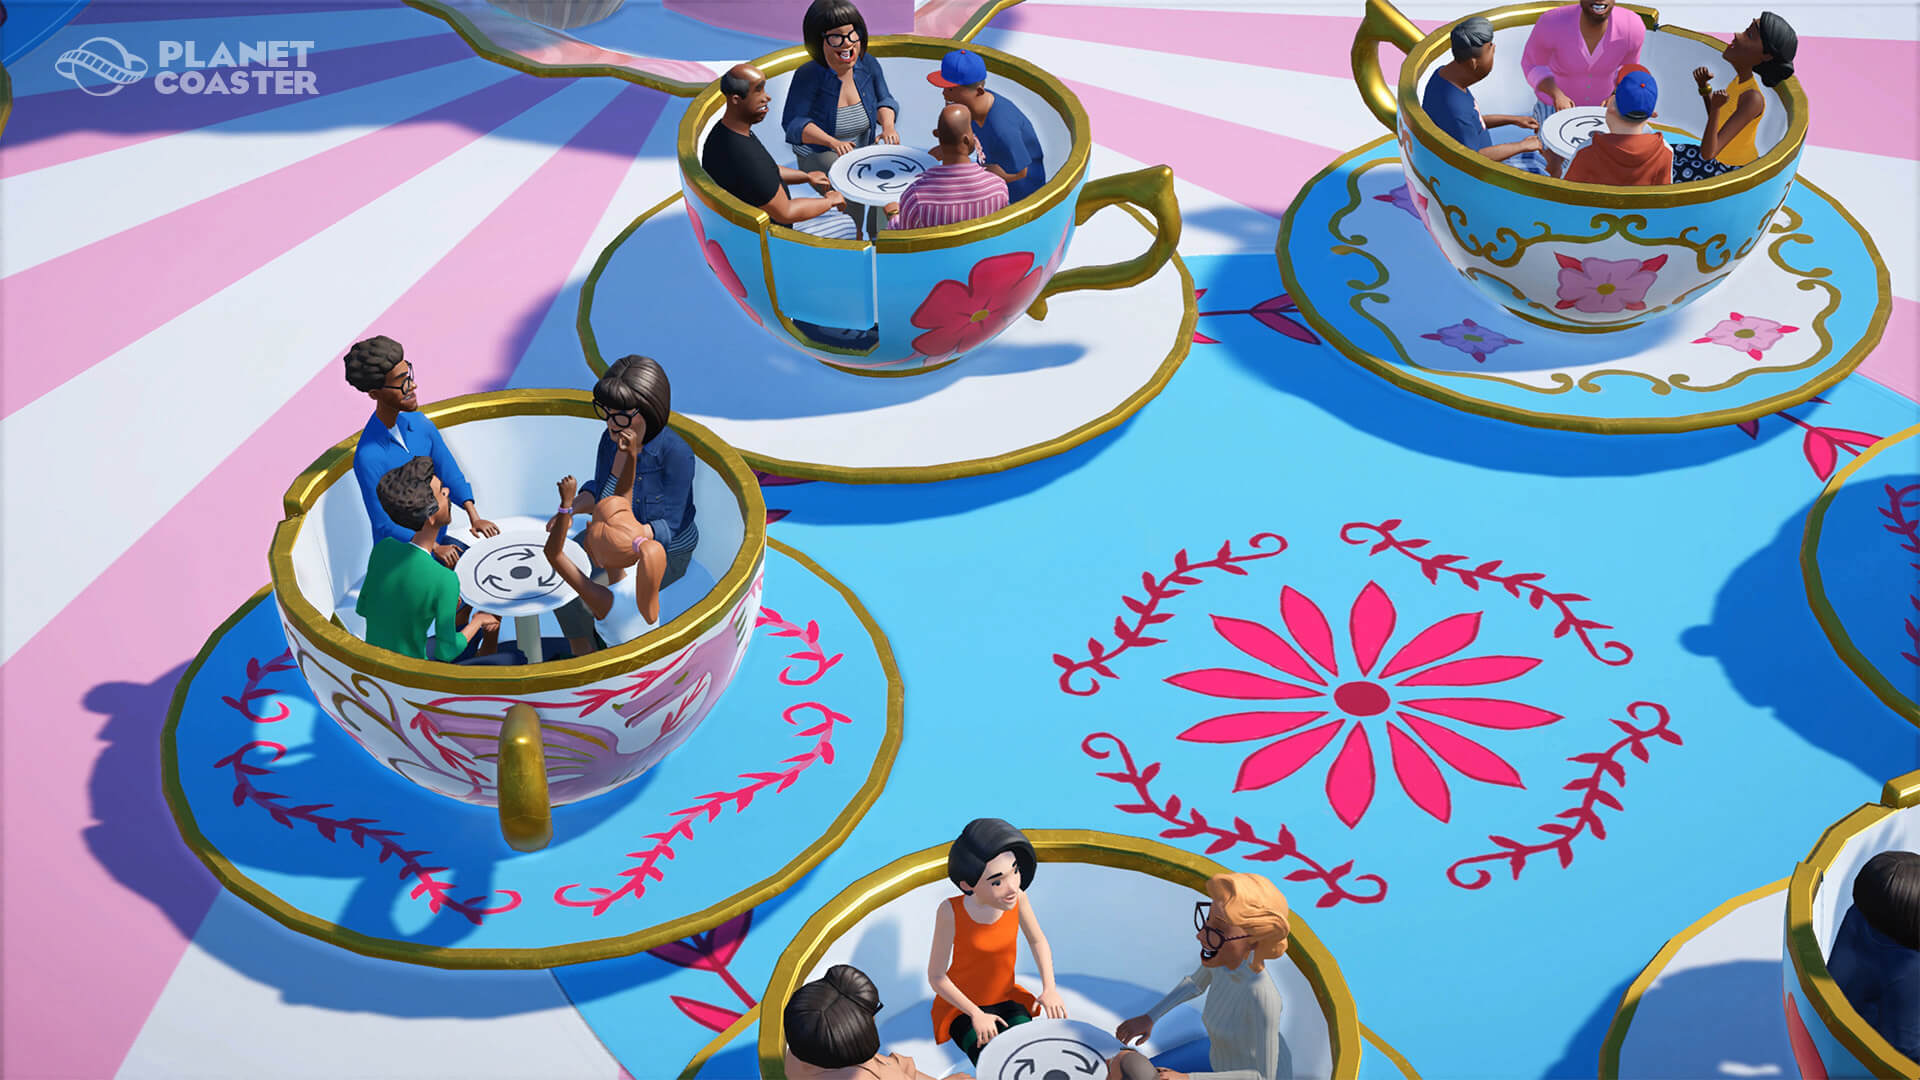 Not enough teacups. That's what I was overlooking.